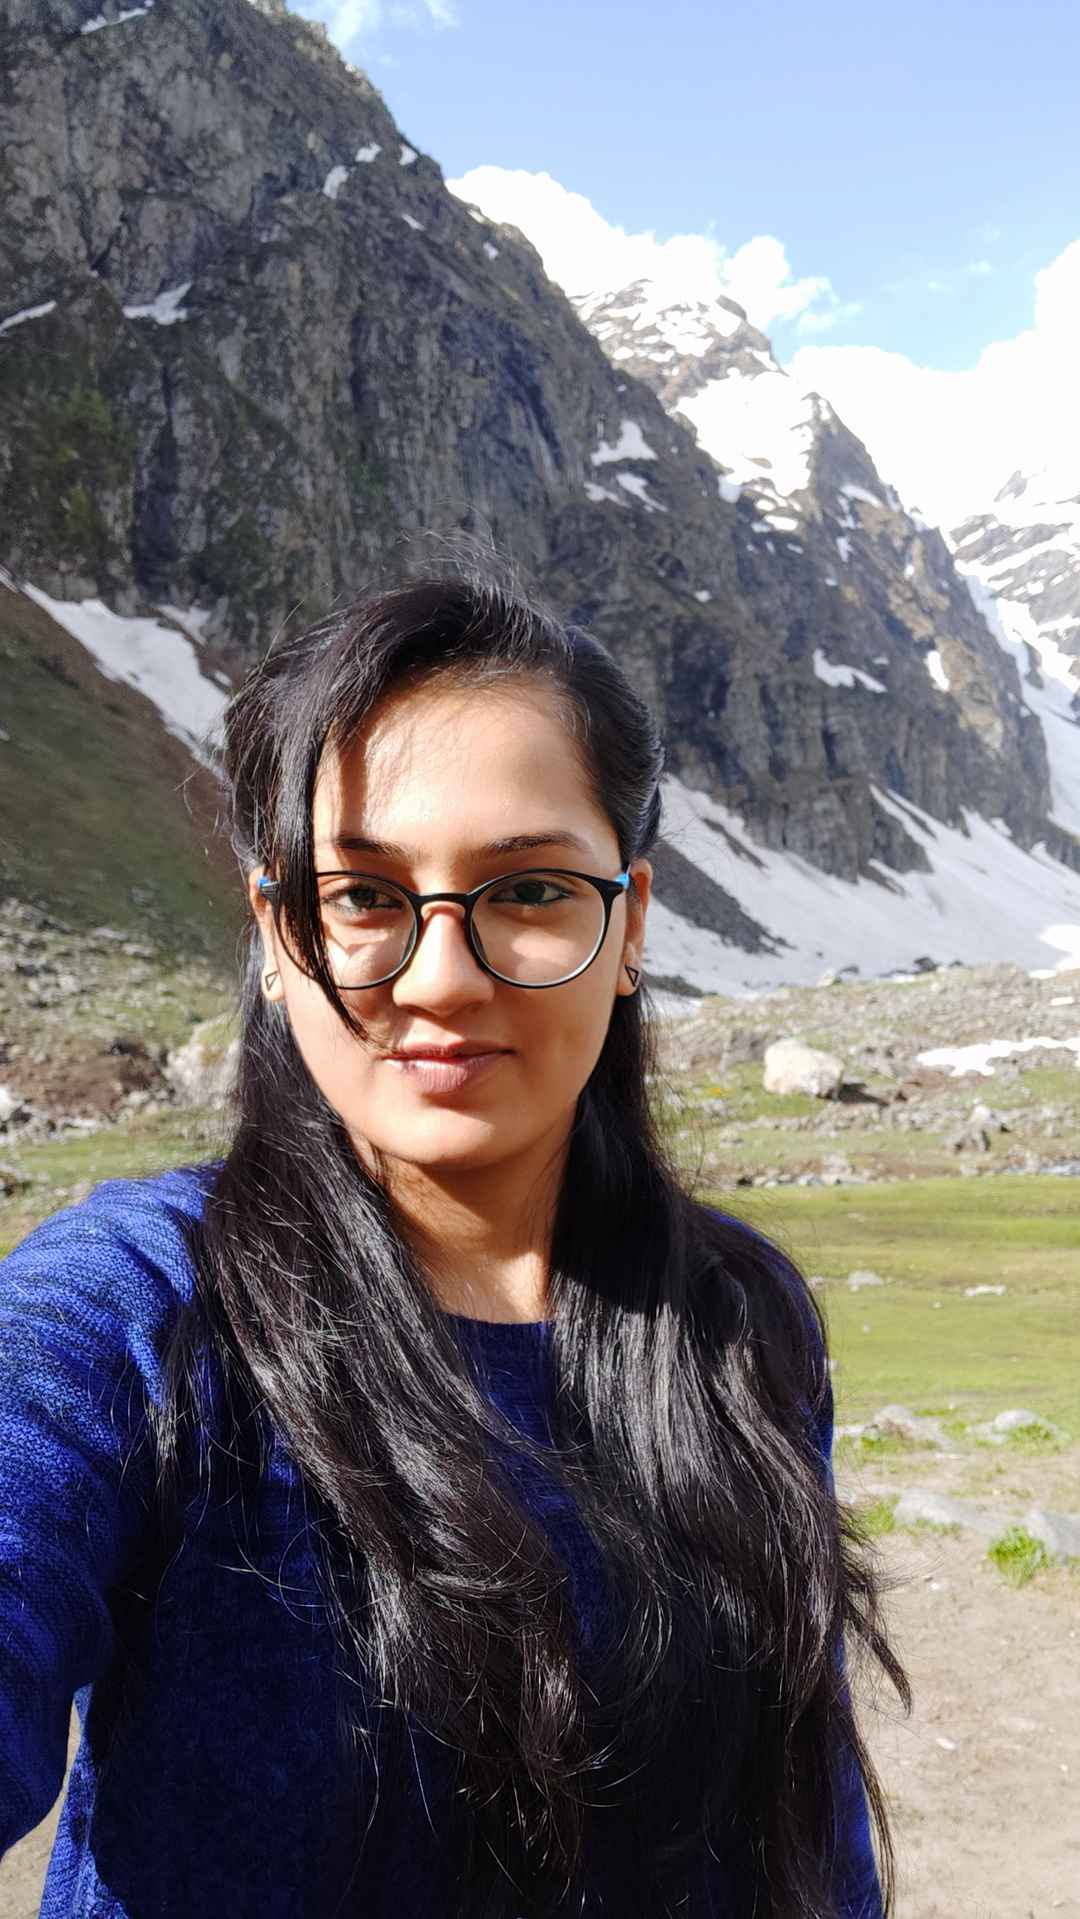 Close to Heaven, down to Earth.  #SelfieWithAView #TripotoCommunity